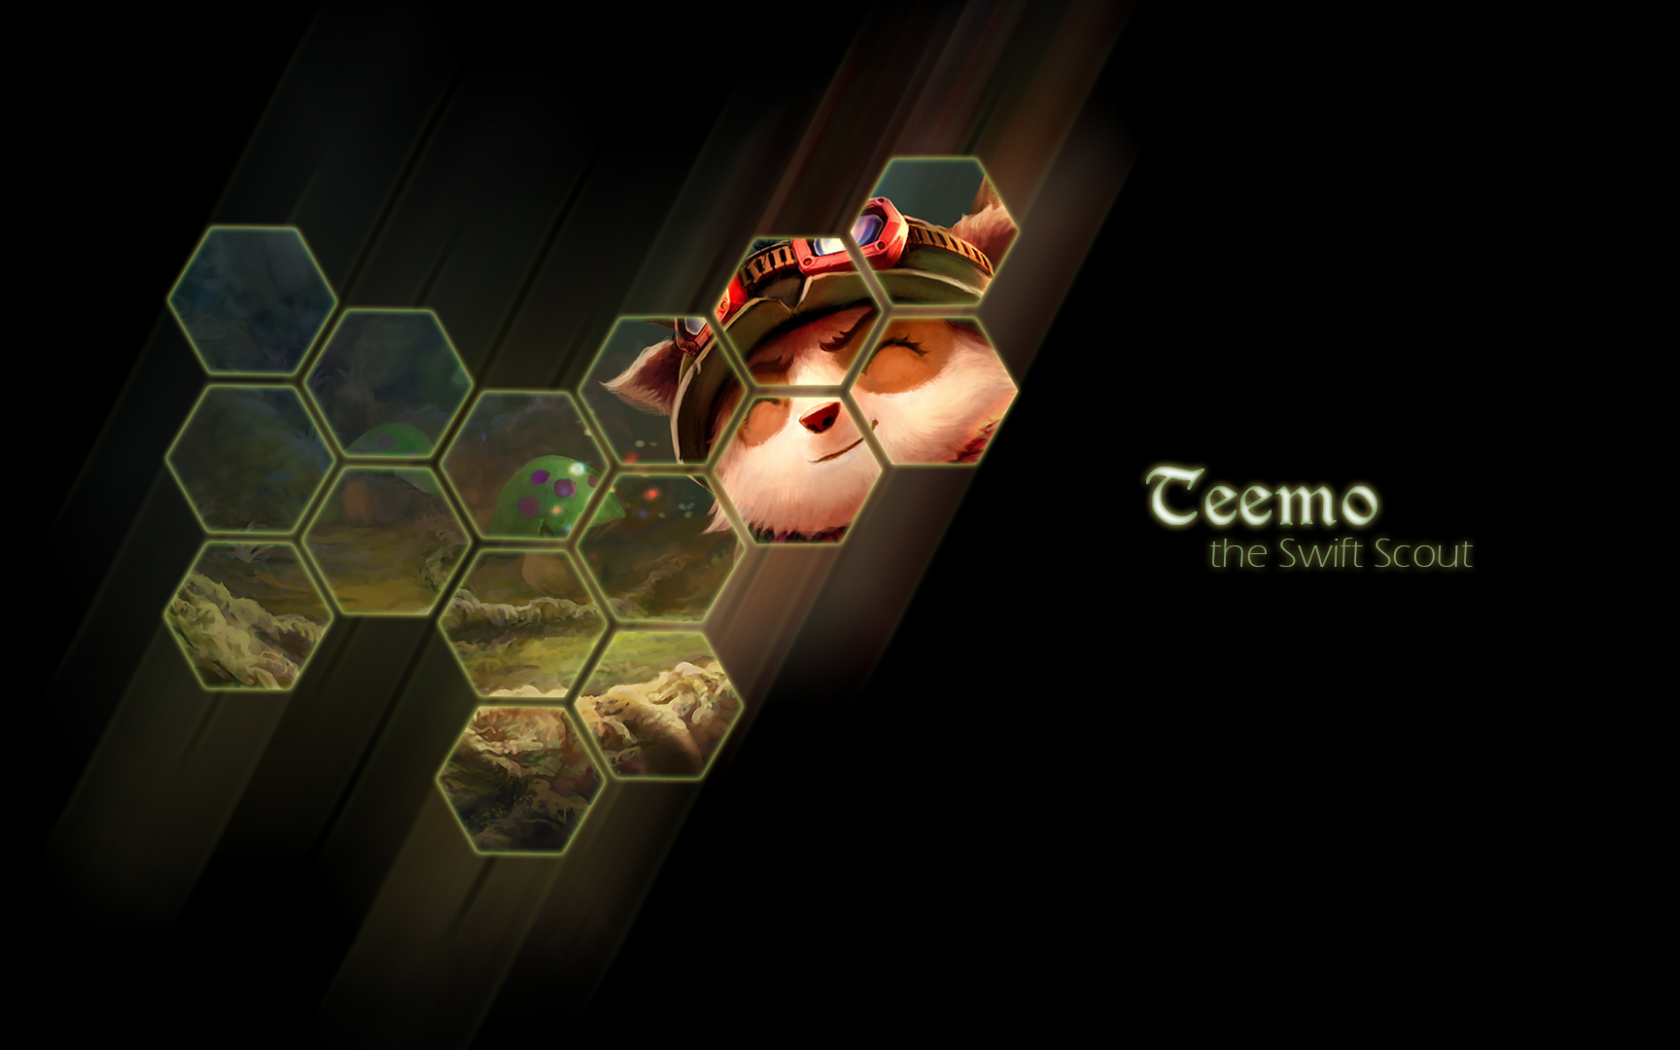 Free Download Teemo League Of Legends Game Hd Wallpaper 1920x1080